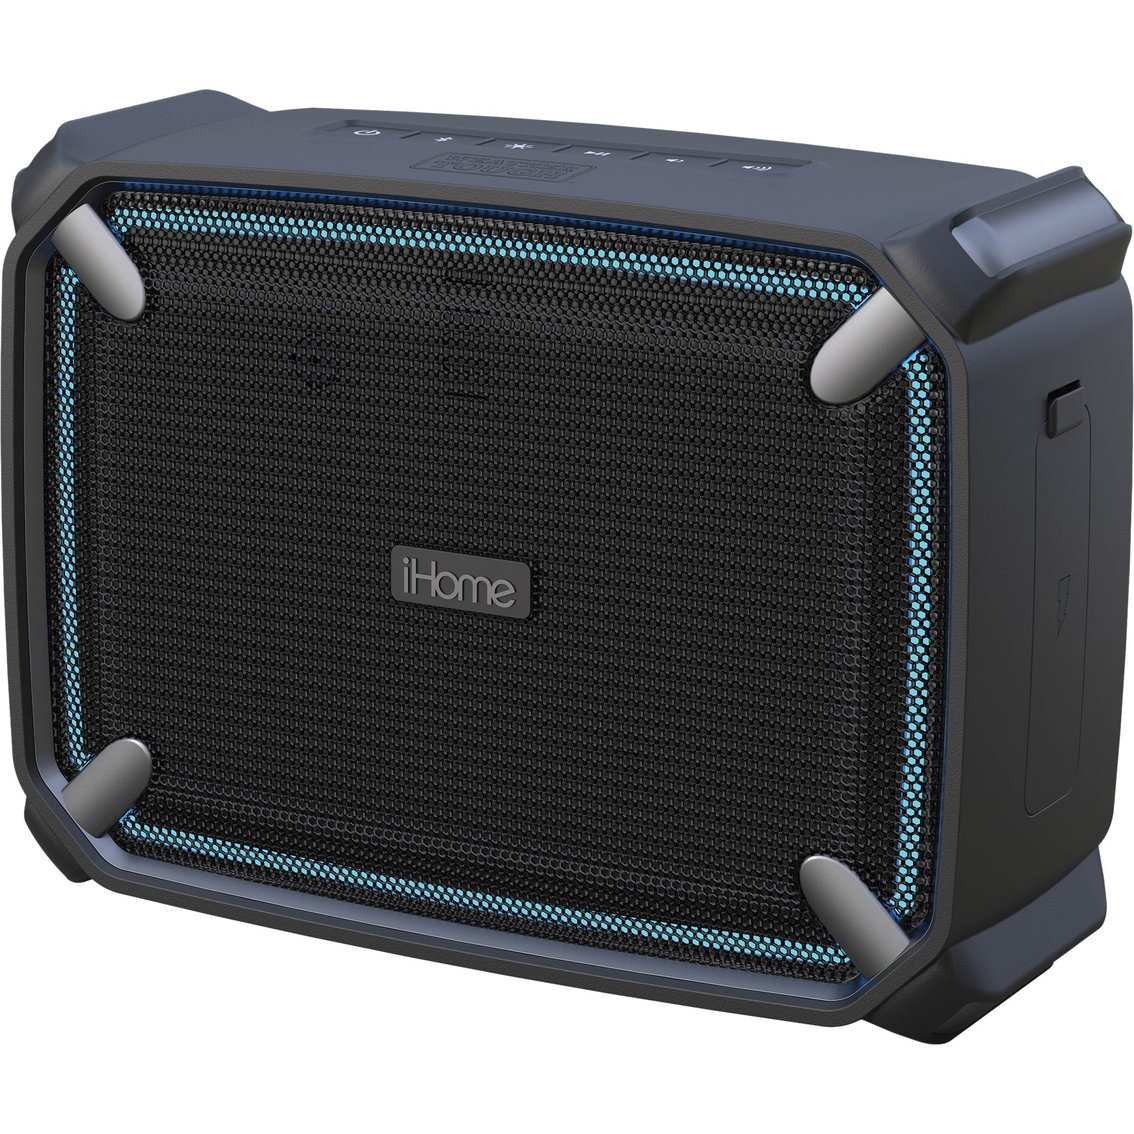 Ihome Bluetooth Portable Speaker: Ihome Weather Tough Model 4 Rechargeable Bluetooth Speaker With Speakerphone